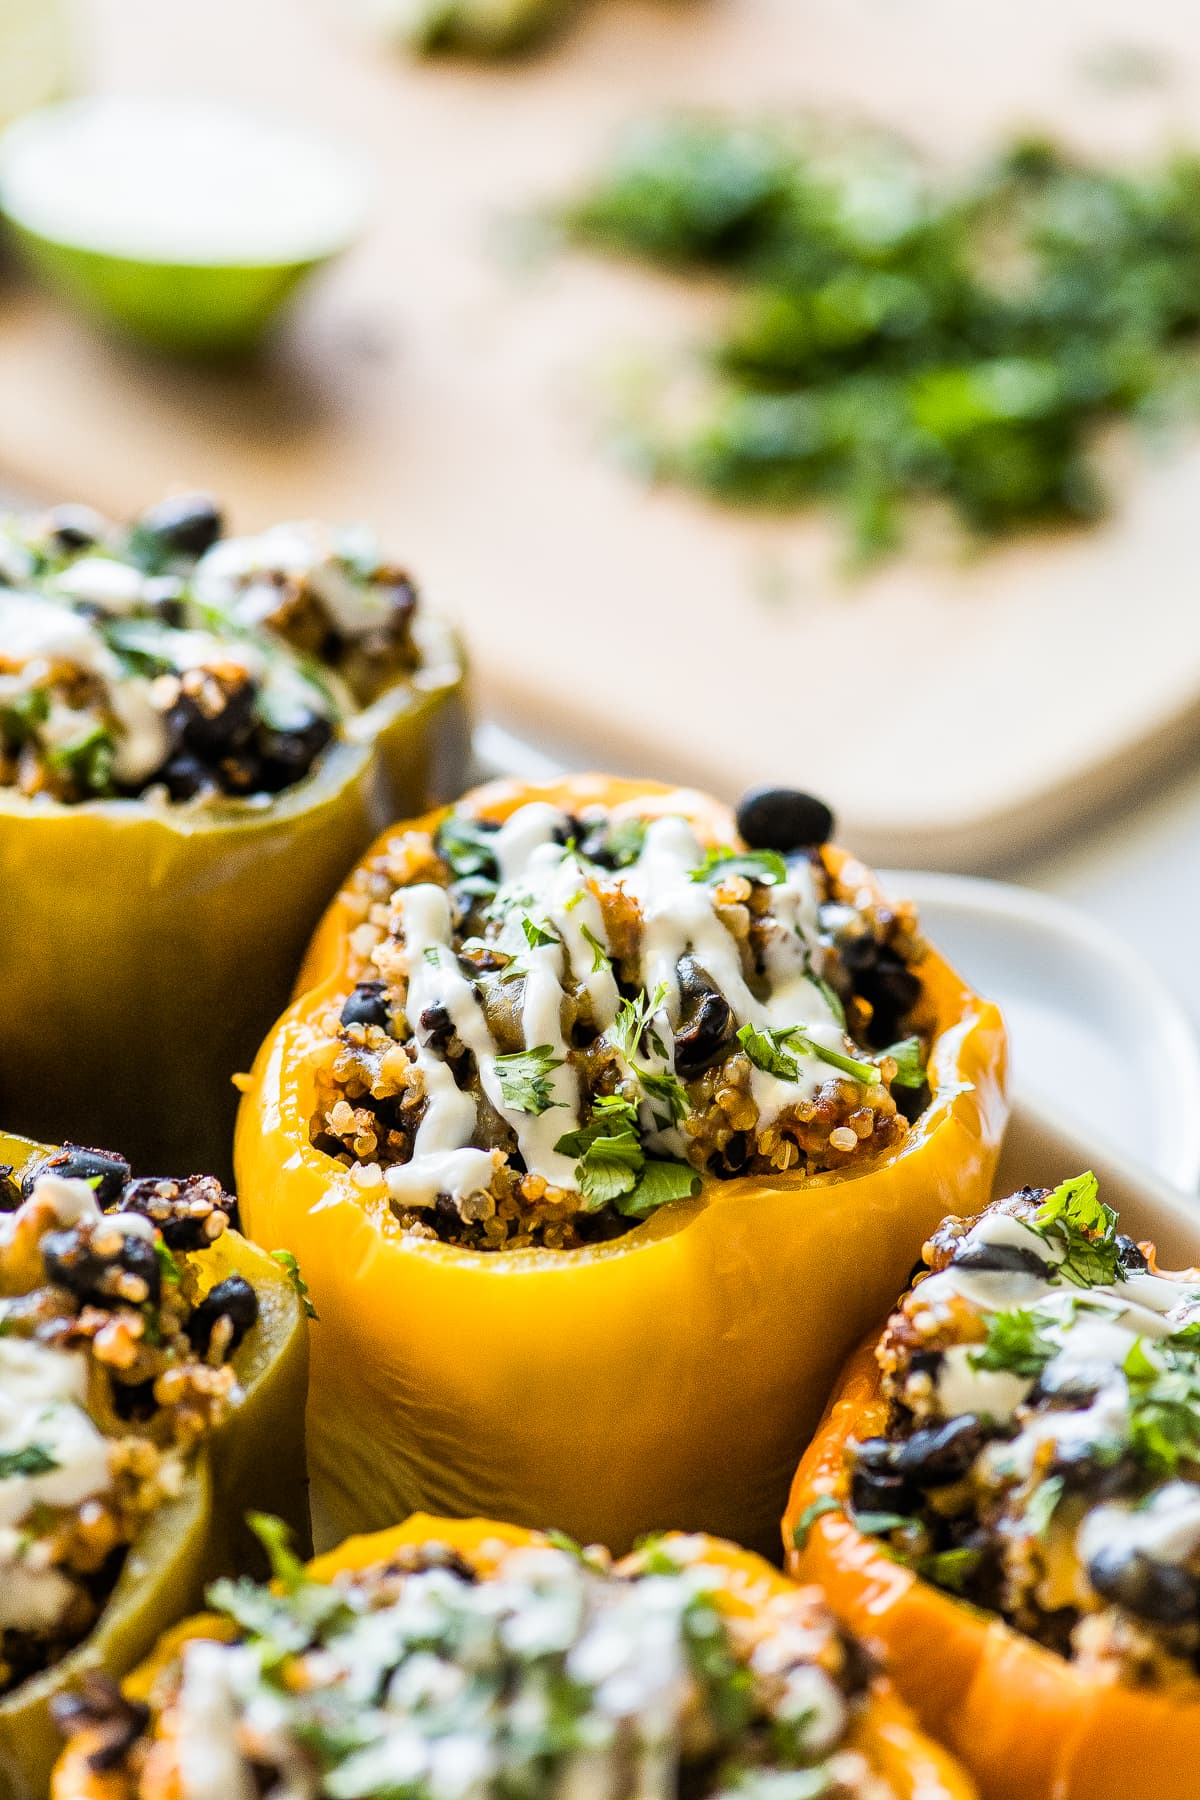 Stuffed peppers topped with sour cream and cilantro.